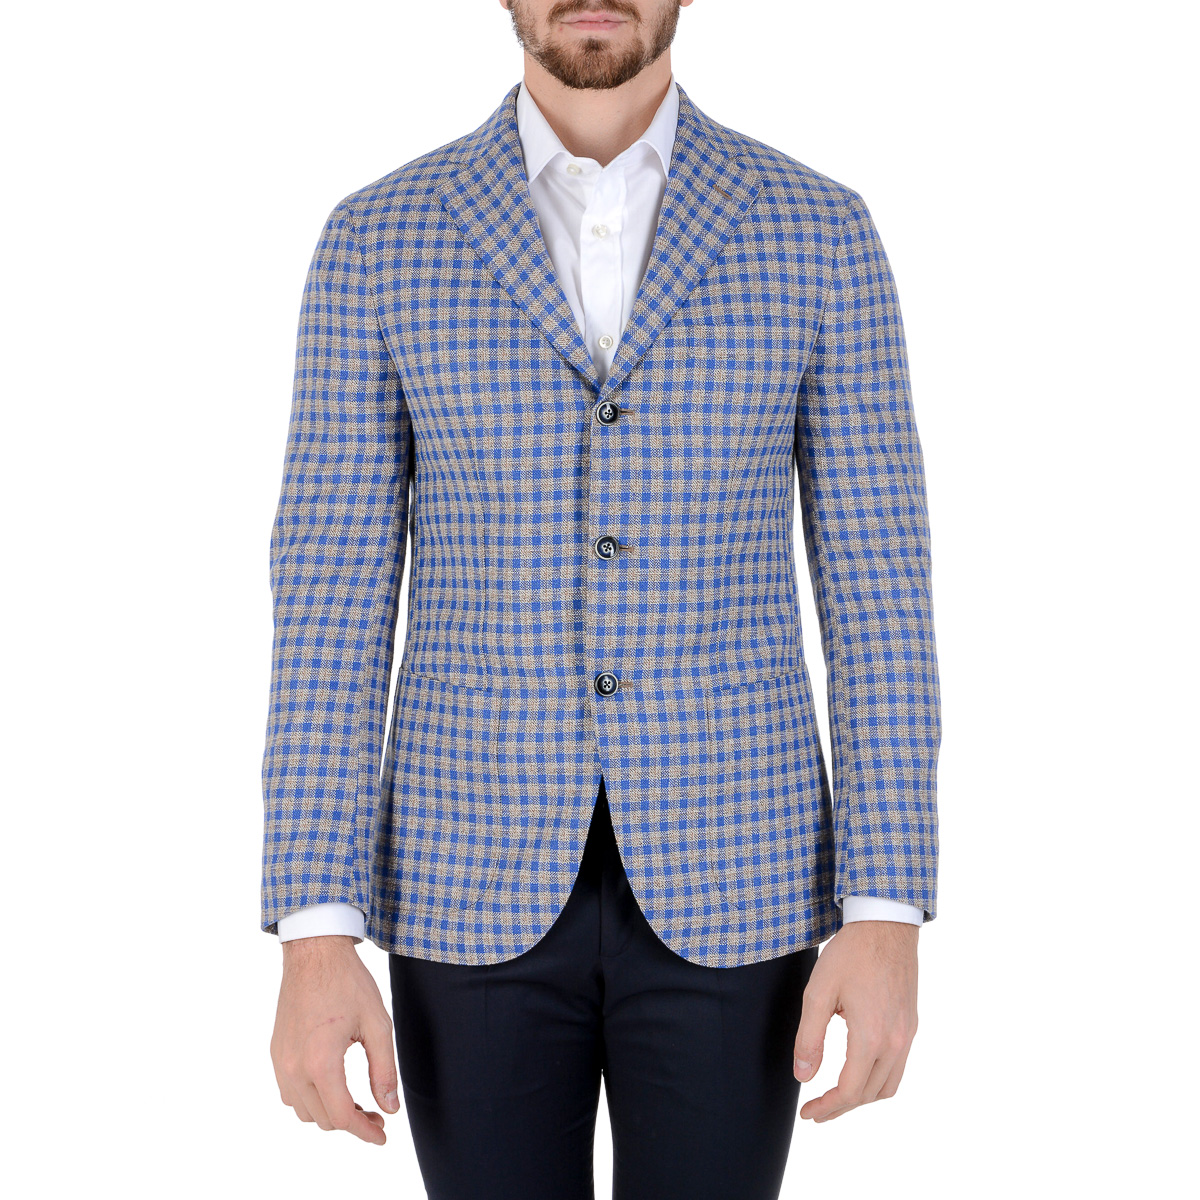 Primary image for Barba Napoli Mens Jacket Long Sleeves Checked